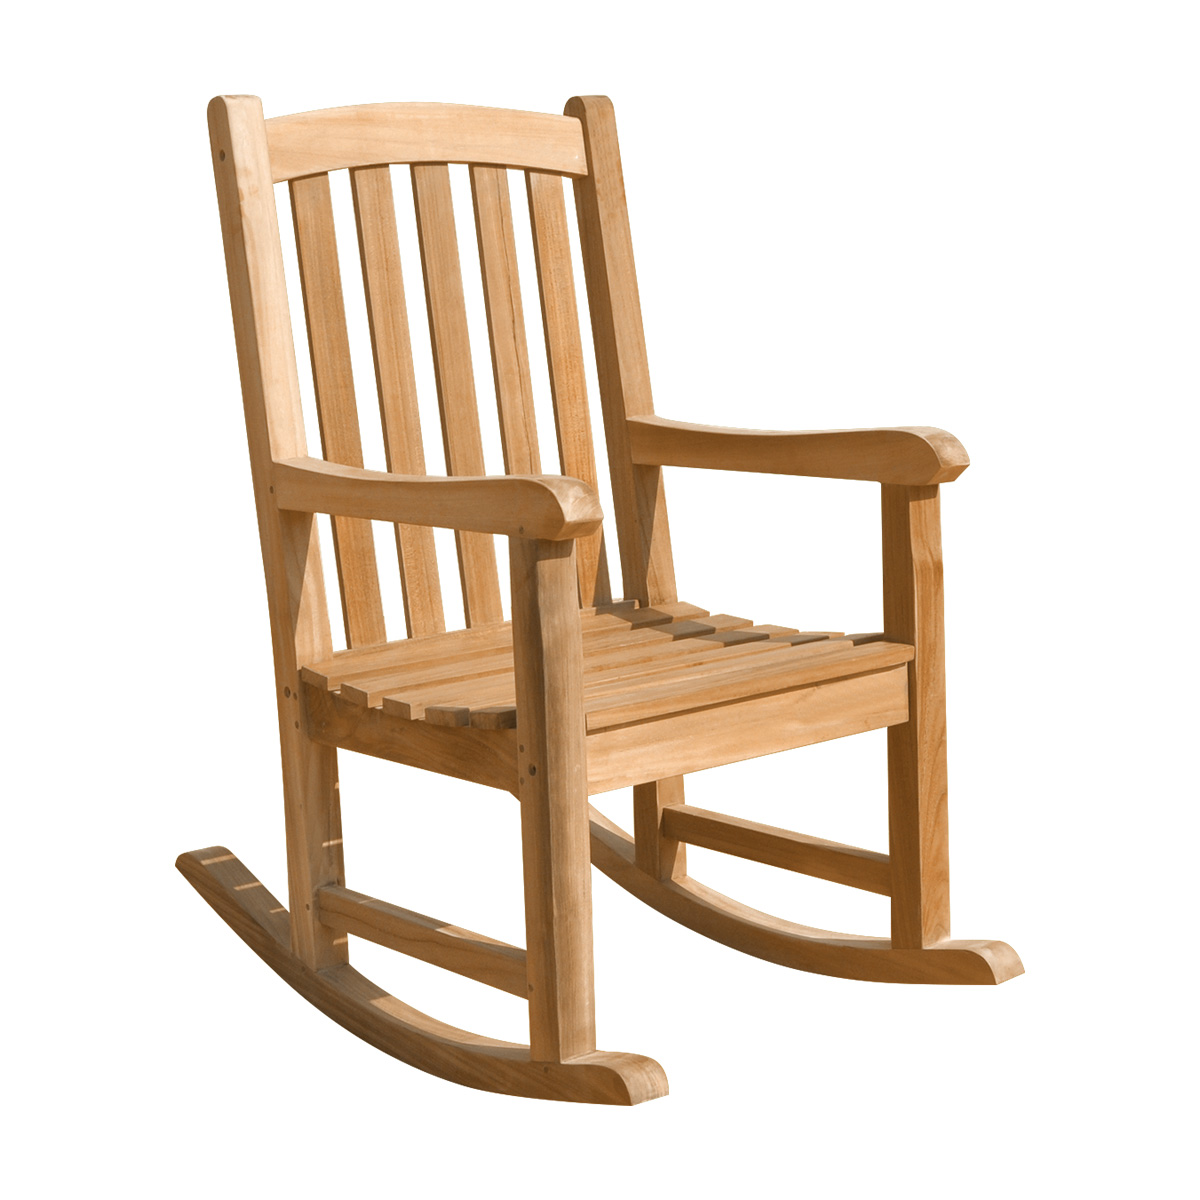 Jardin rocking chair - Rocking chair confortable ...